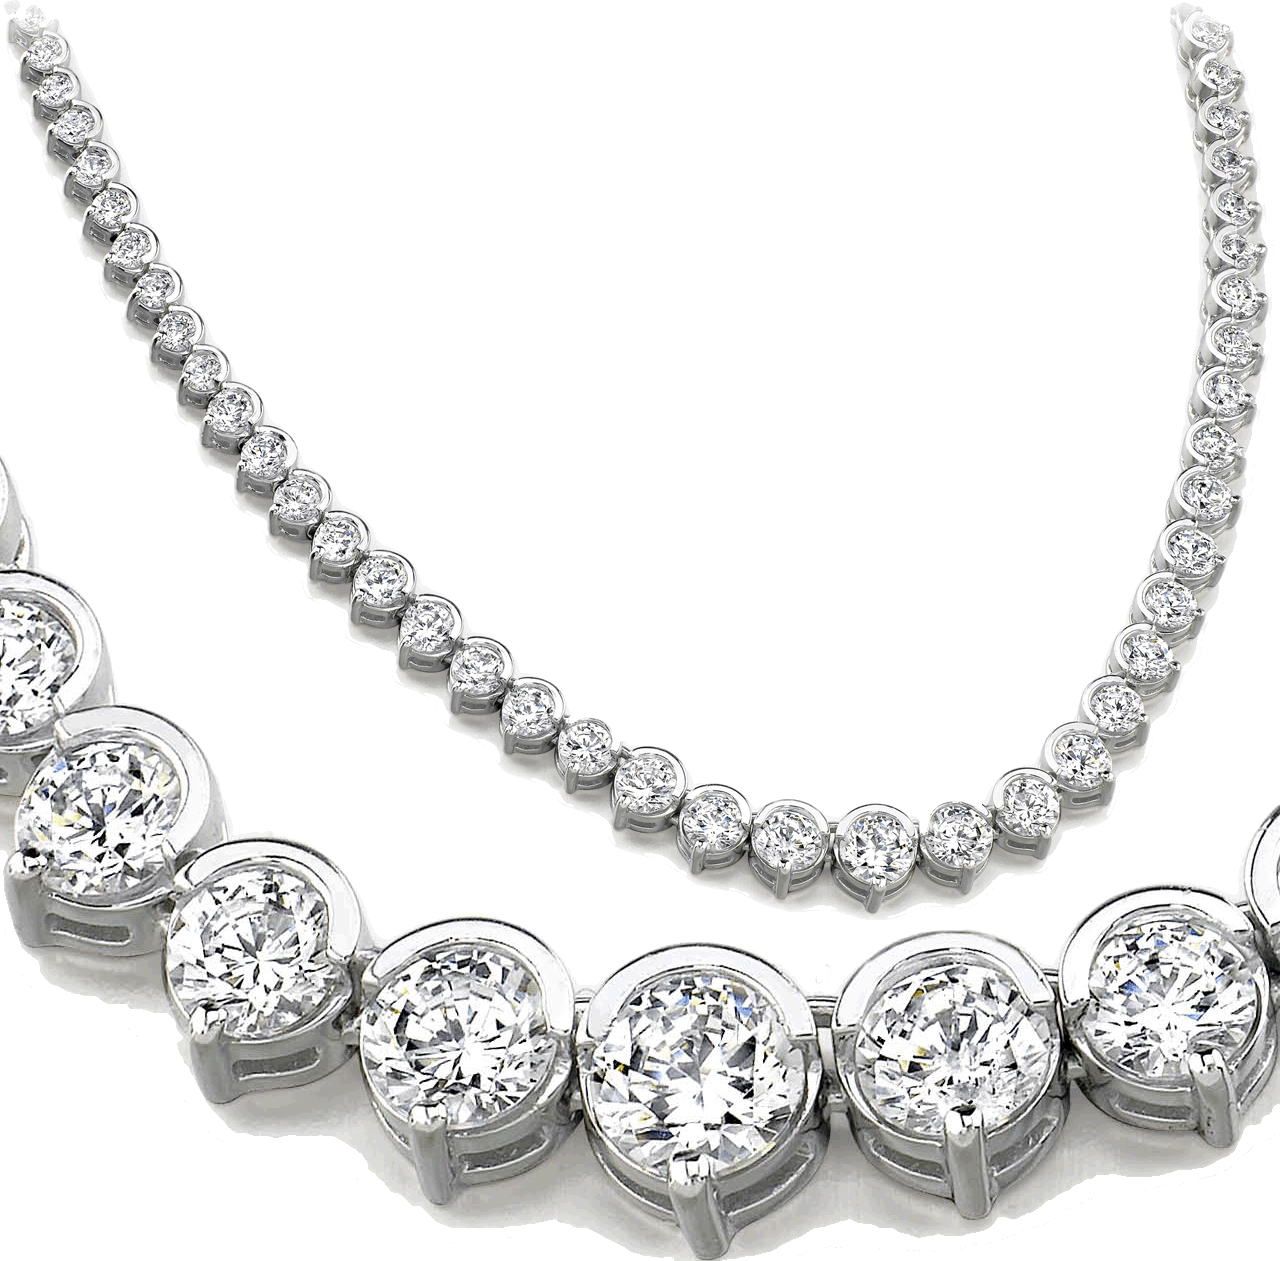 Image for the collection Diamond Necklaces